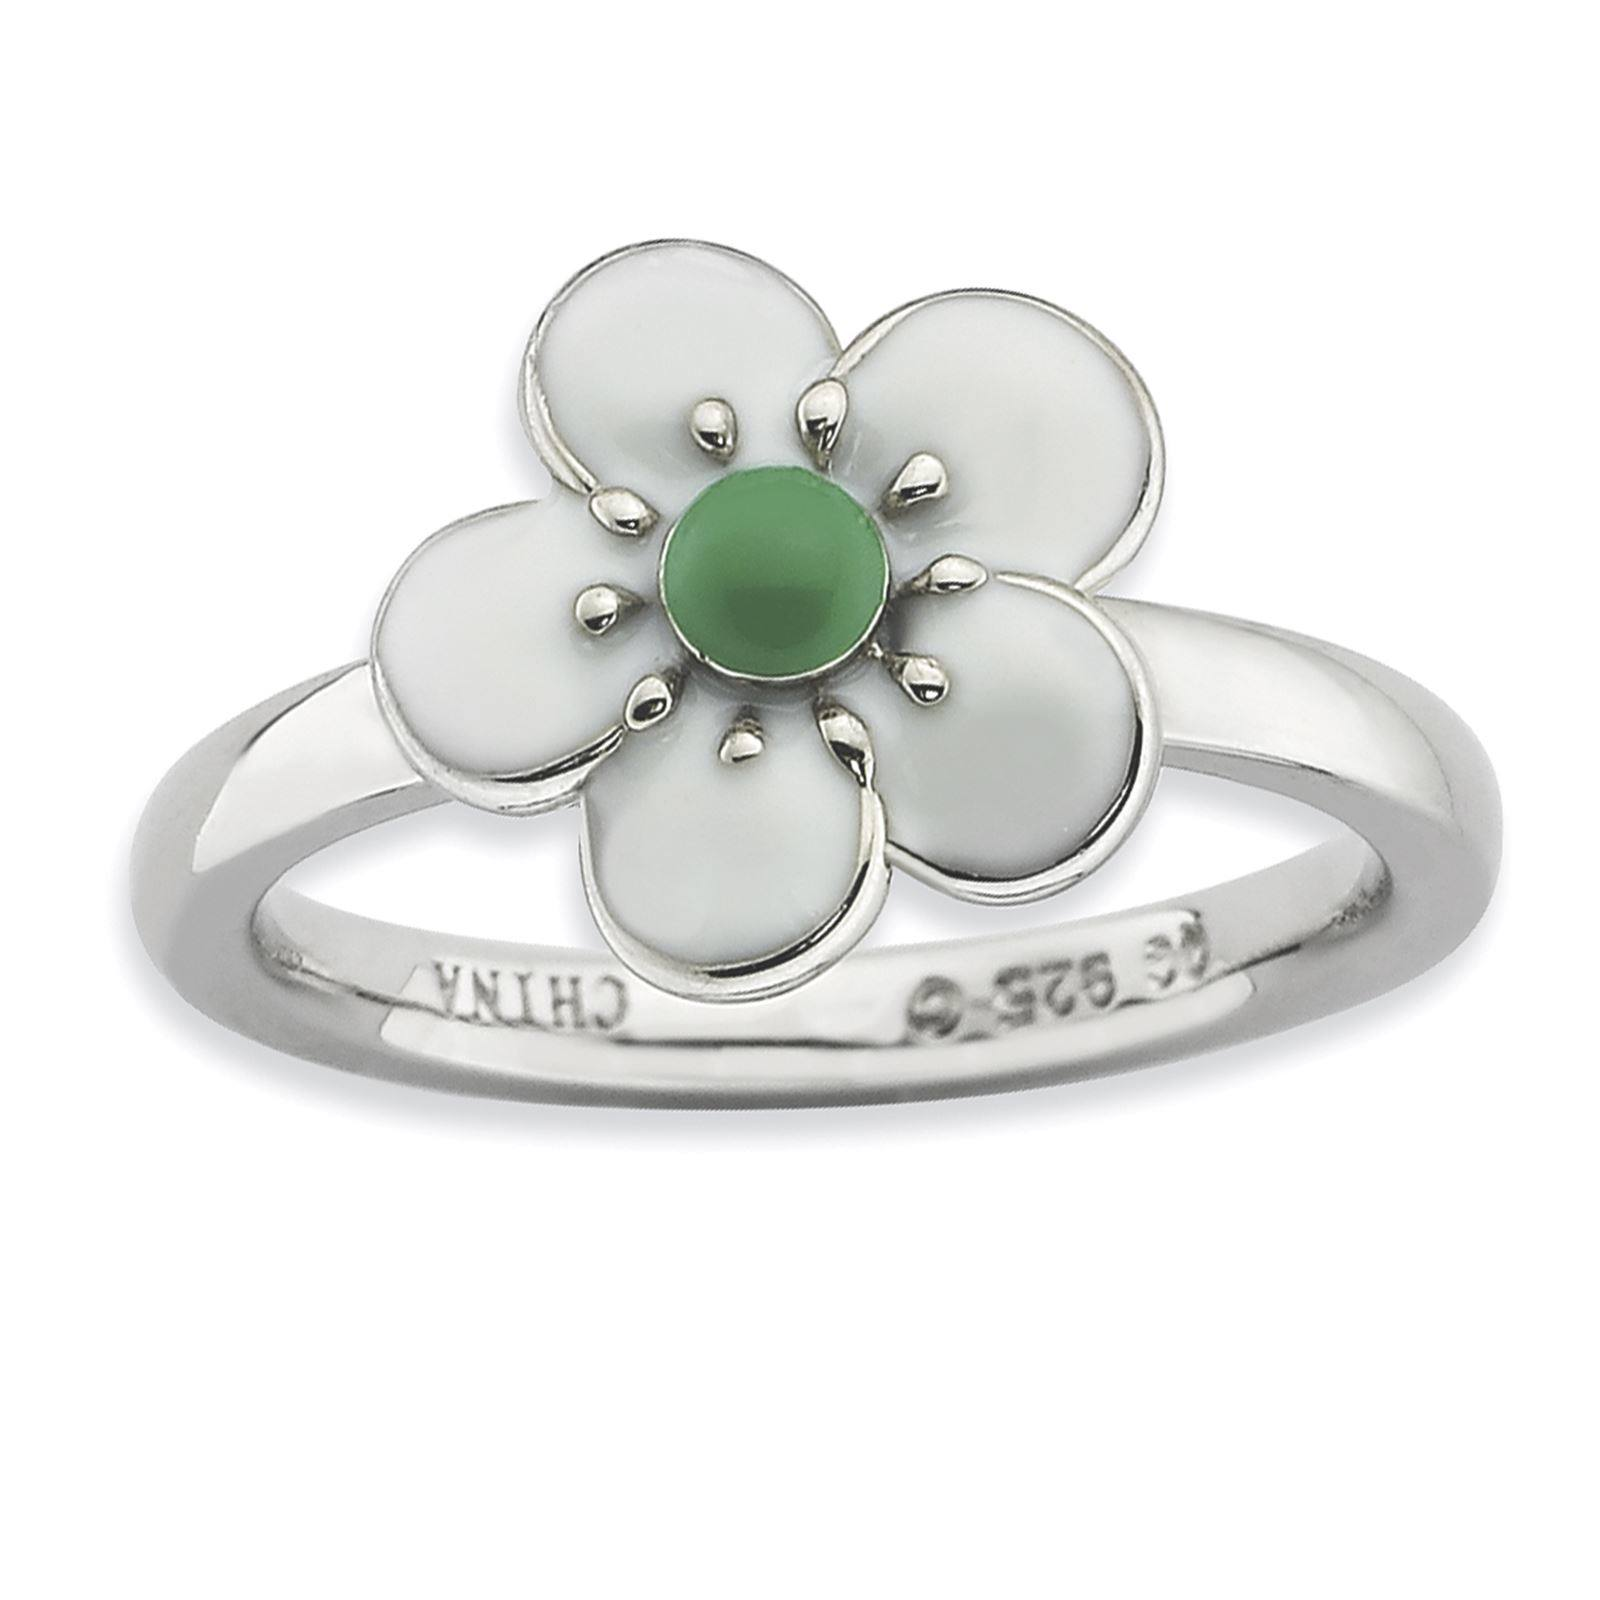 Sterling Silver Rhodium-Plated Polished Hawthorn Enamel Stackable Ring Size 9